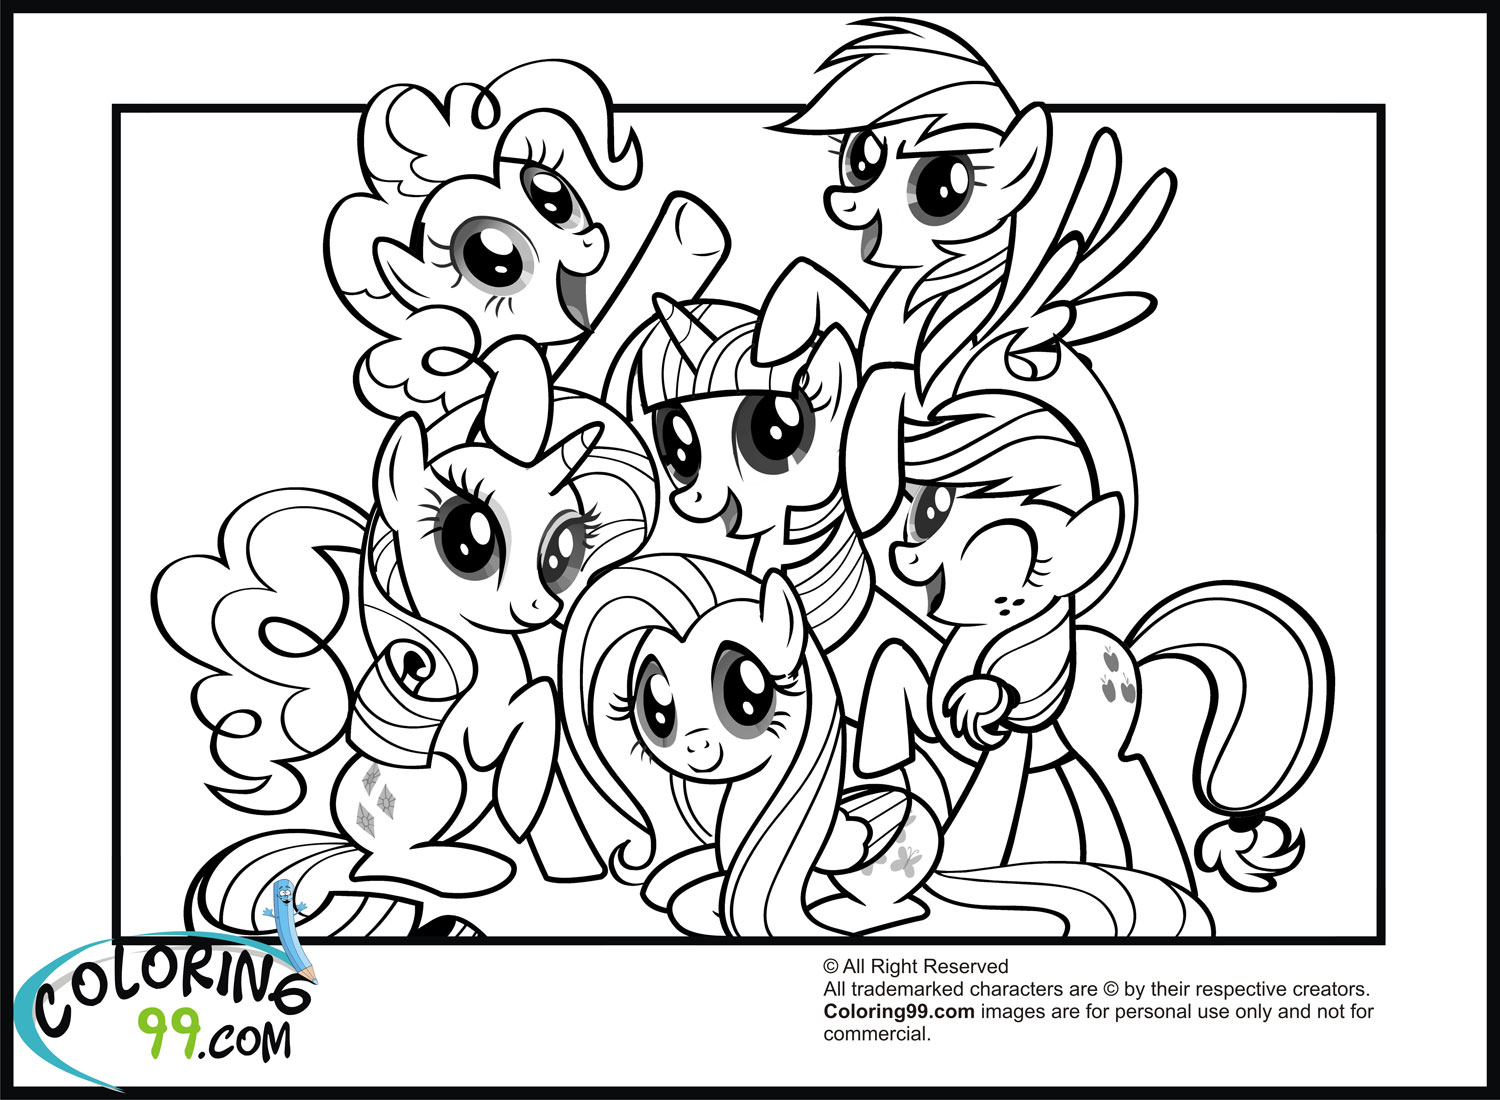 1500x1100 Mlp Printable Coloring Pages My Little Pony Coloring Pages